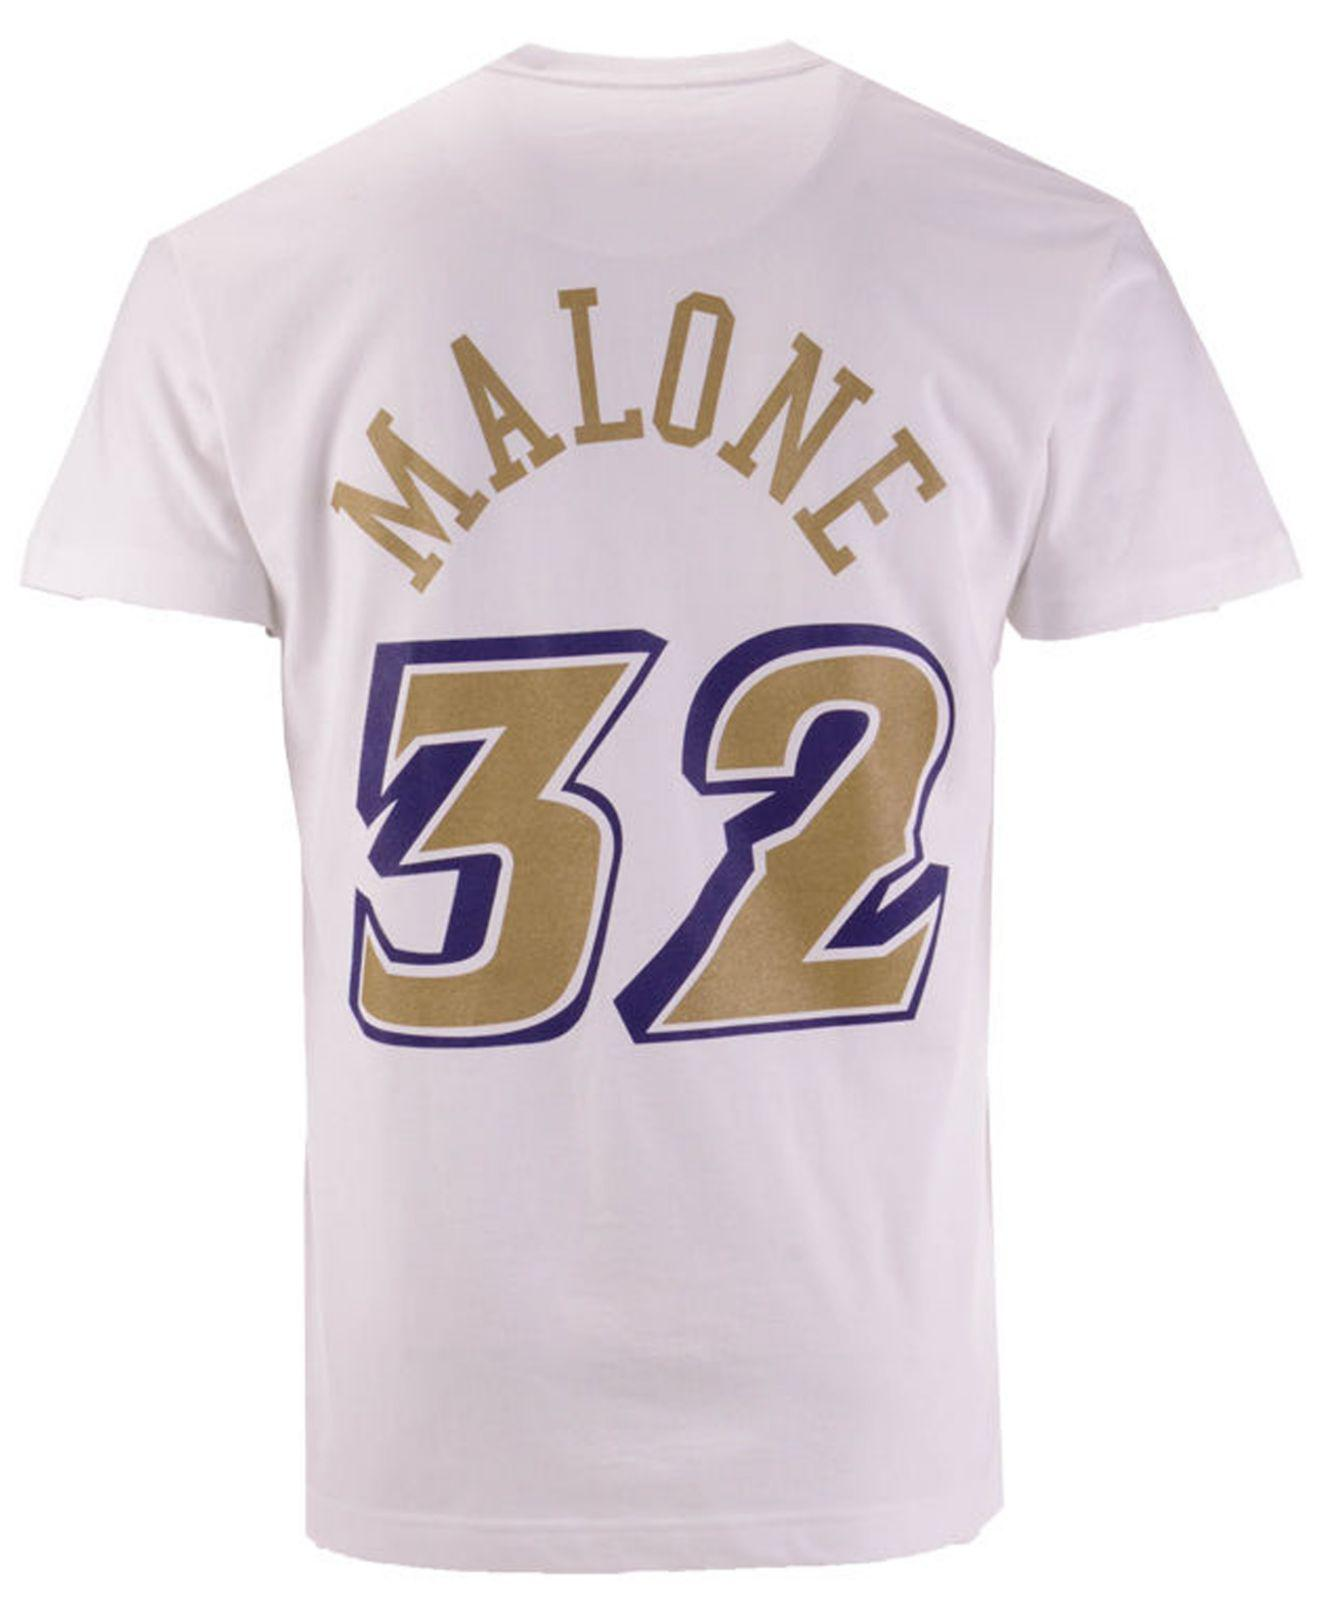 buy online d5a9c 00cc9 Mitchell & Ness White Karl Malone Utah Jazz Gold Collection Name And Number  T-shirt for men